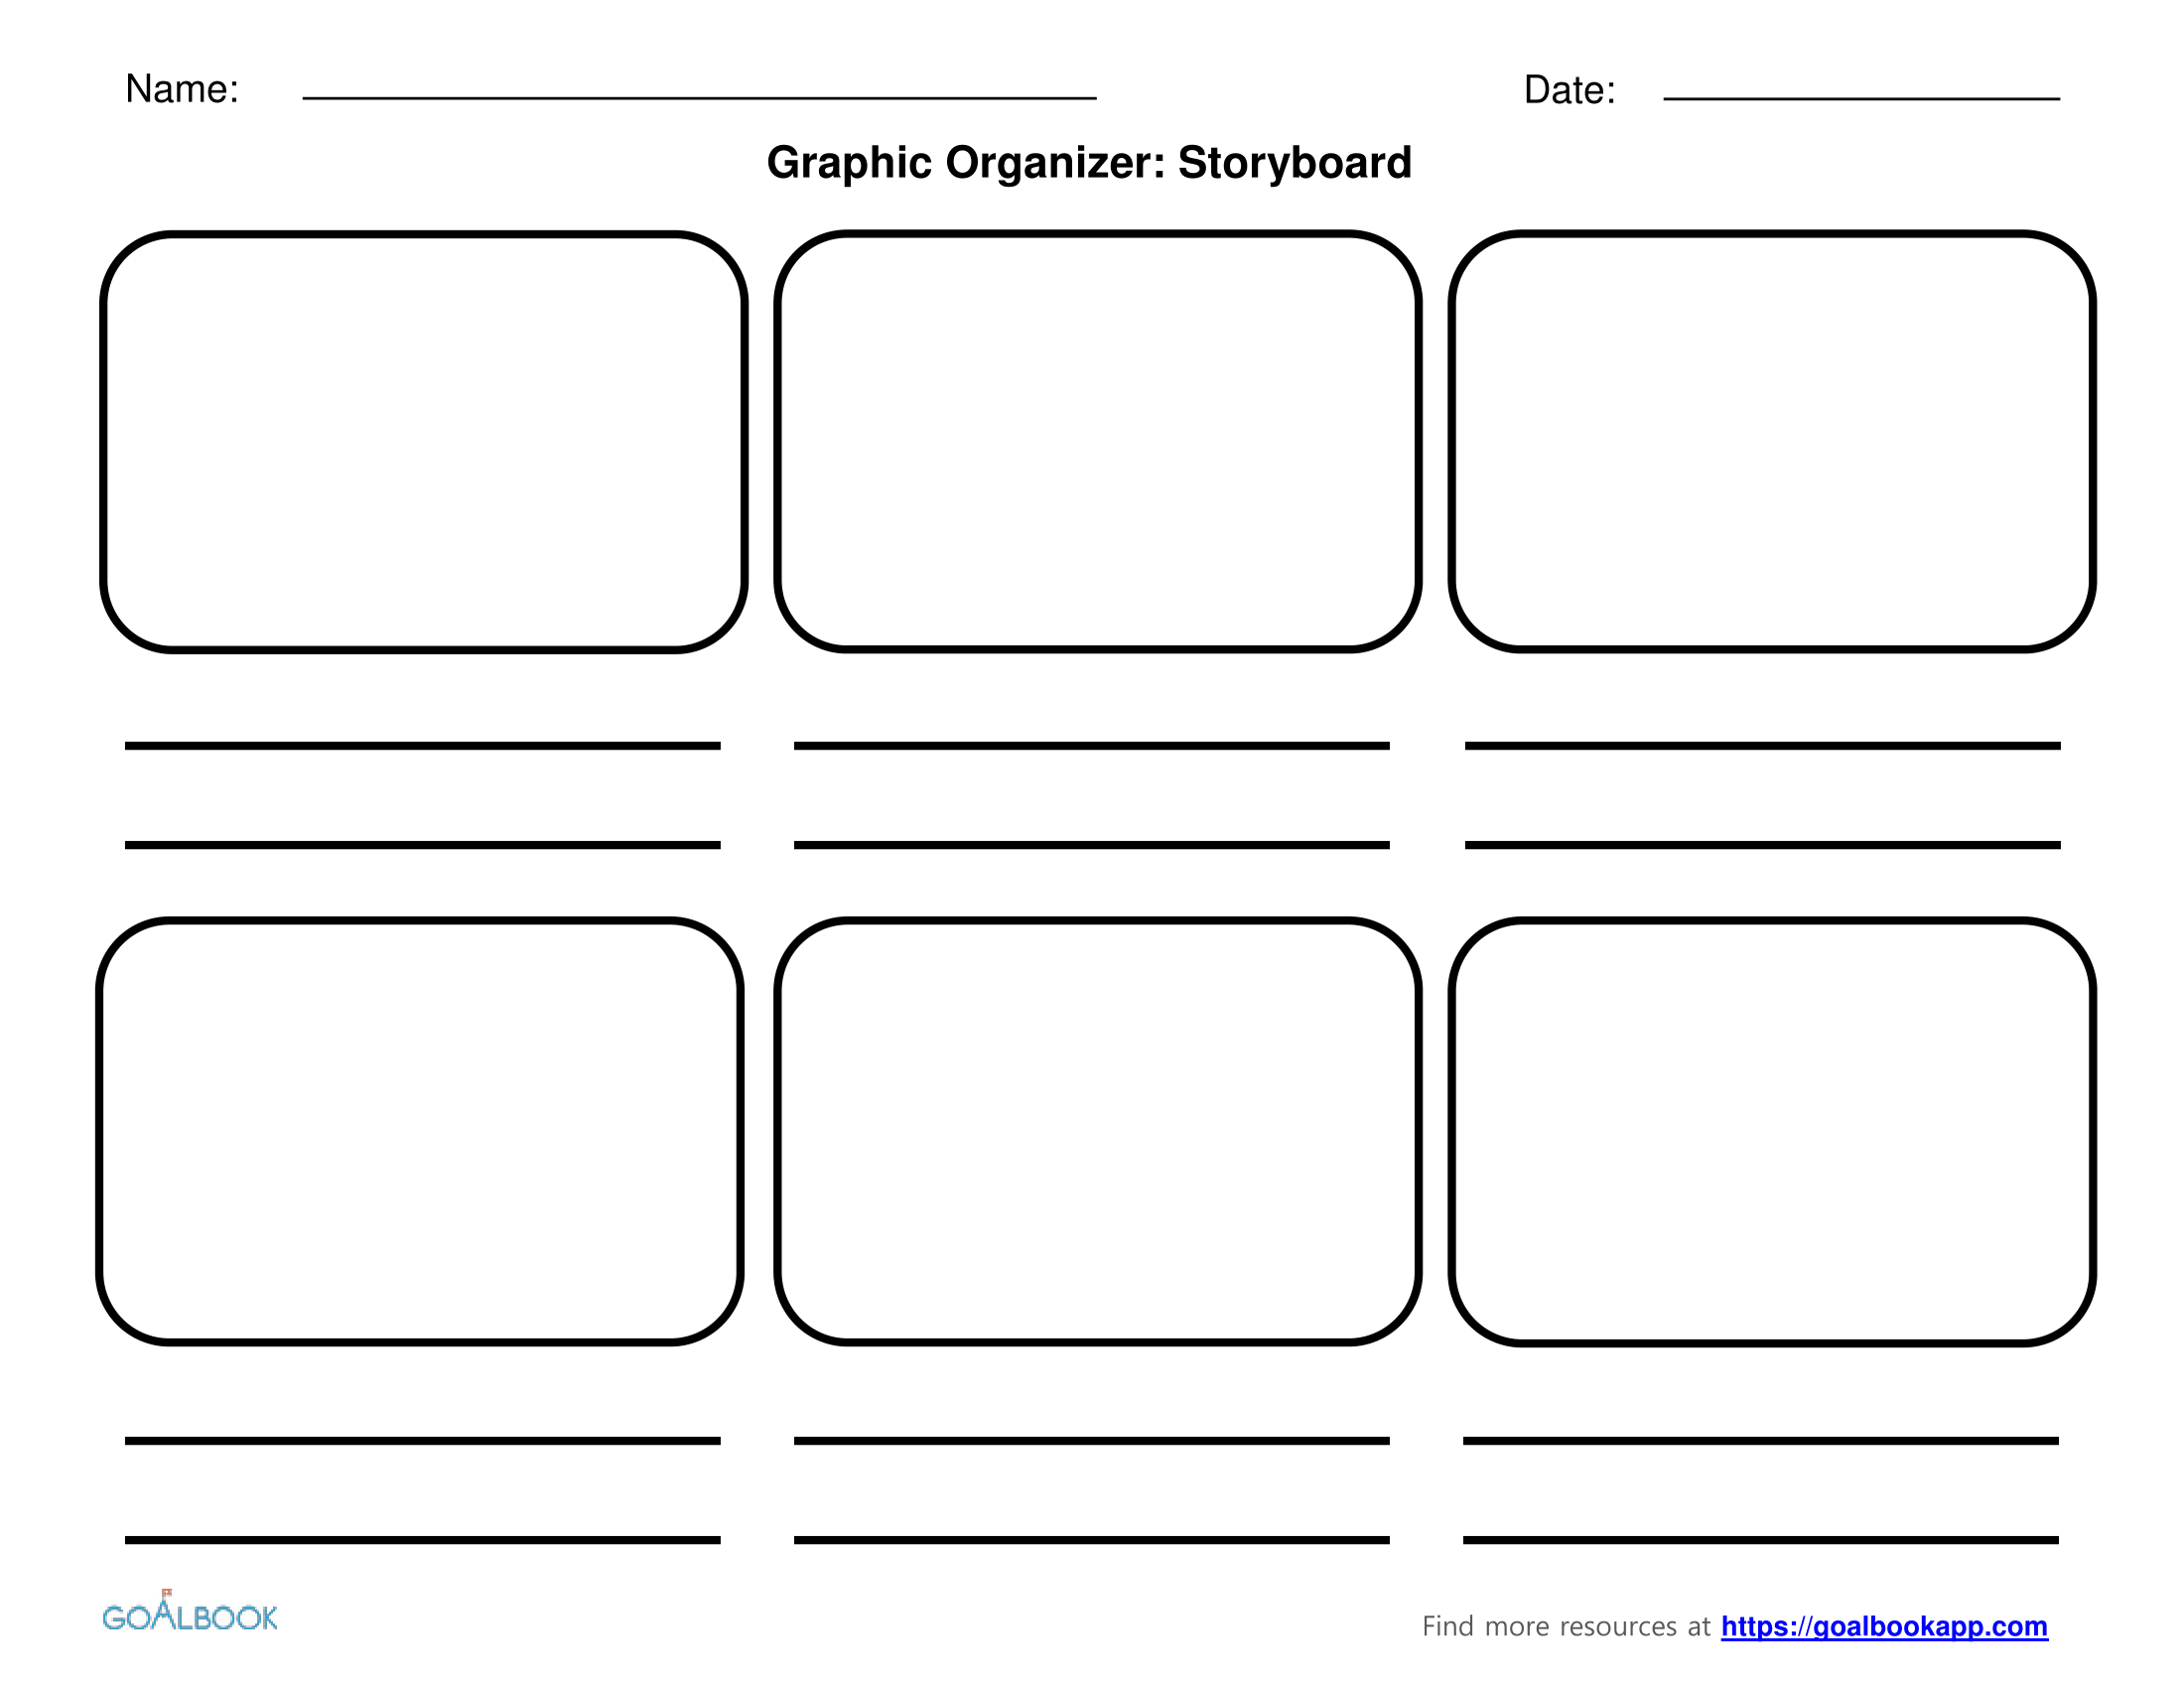 Graphic Organizer Template | www.imgkid.com - The Image ...